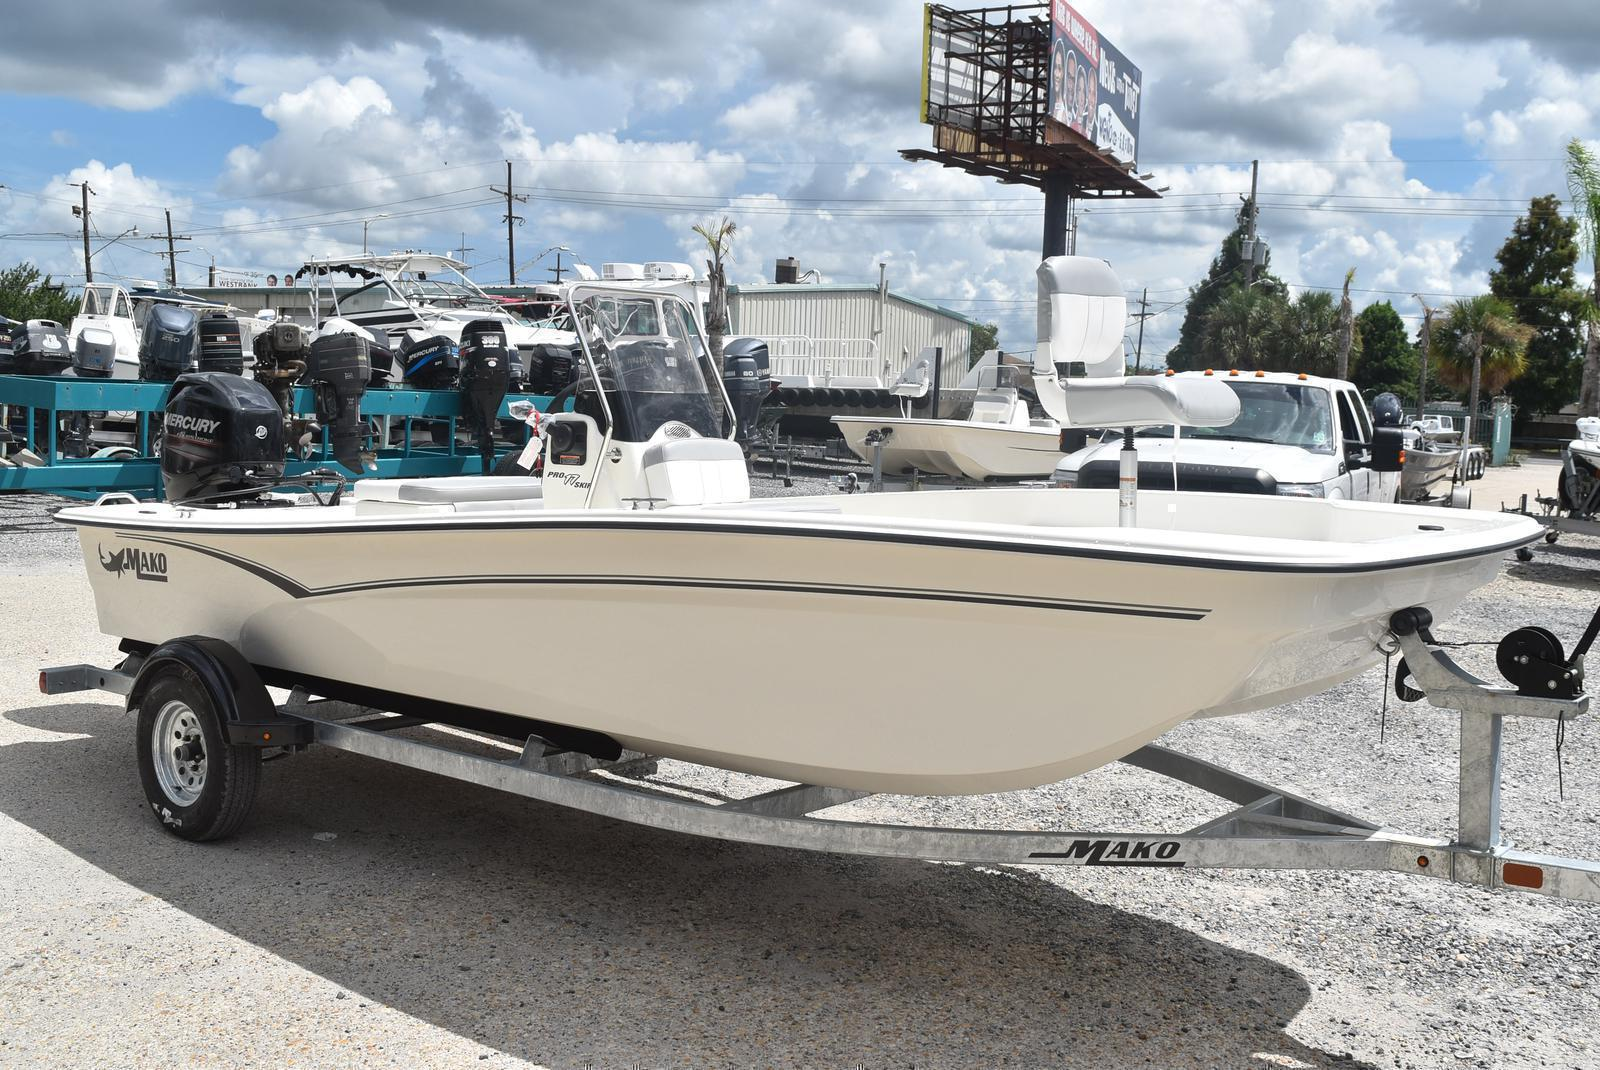 2020 Mako boat for sale, model of the boat is Pro Skiff 17, 75 ELPT & Image # 677 of 702